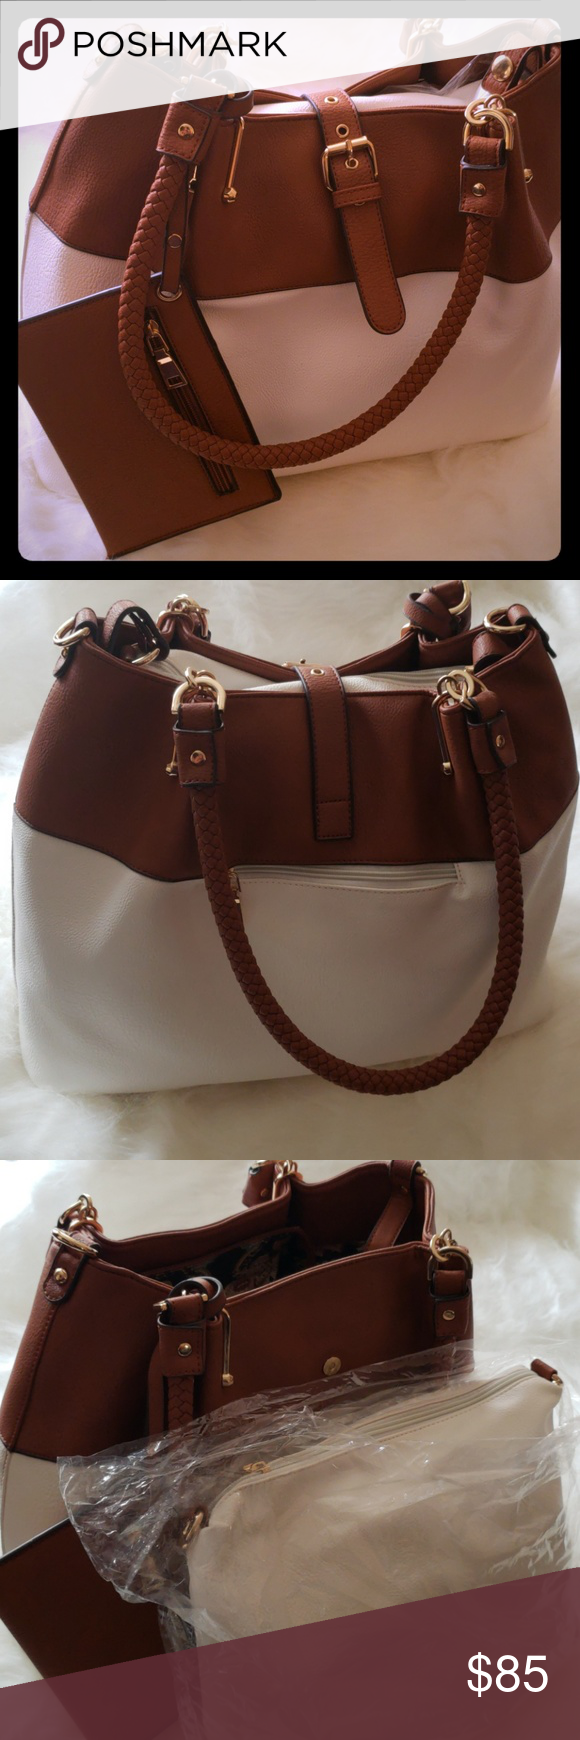 Beautiful Wilson Leather Bag NWT